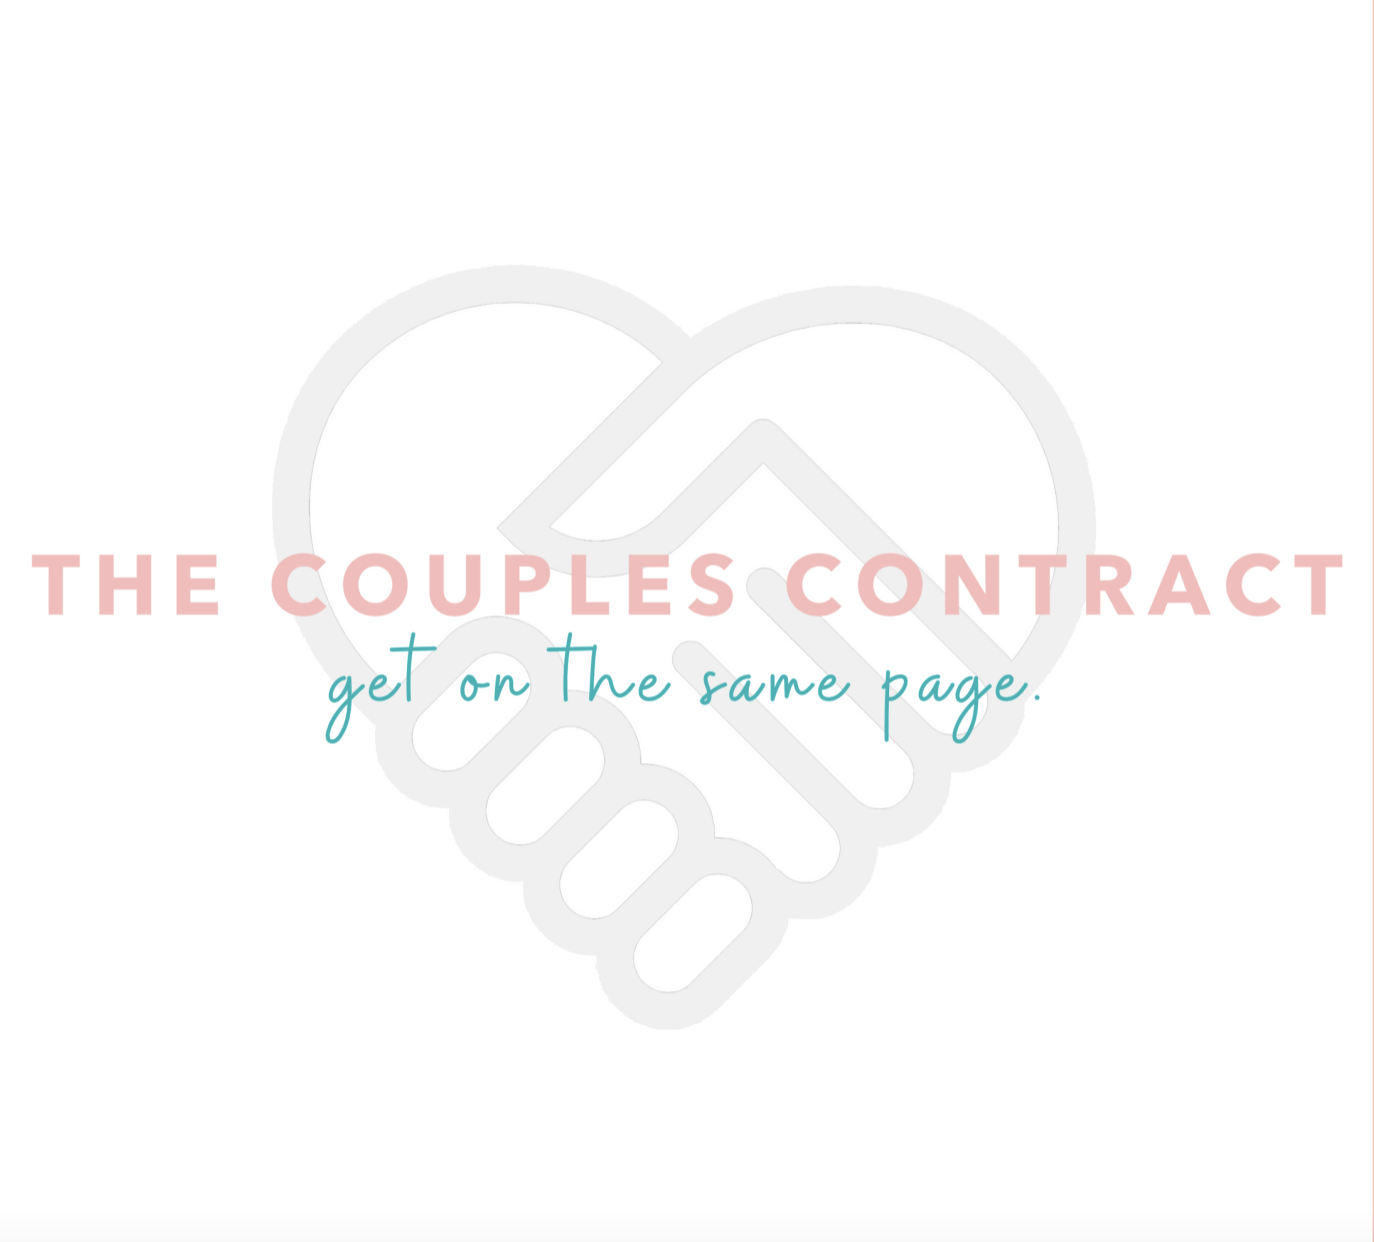 The Couples Company Launches Contract and Card Game for Couples To Define Their Relationship